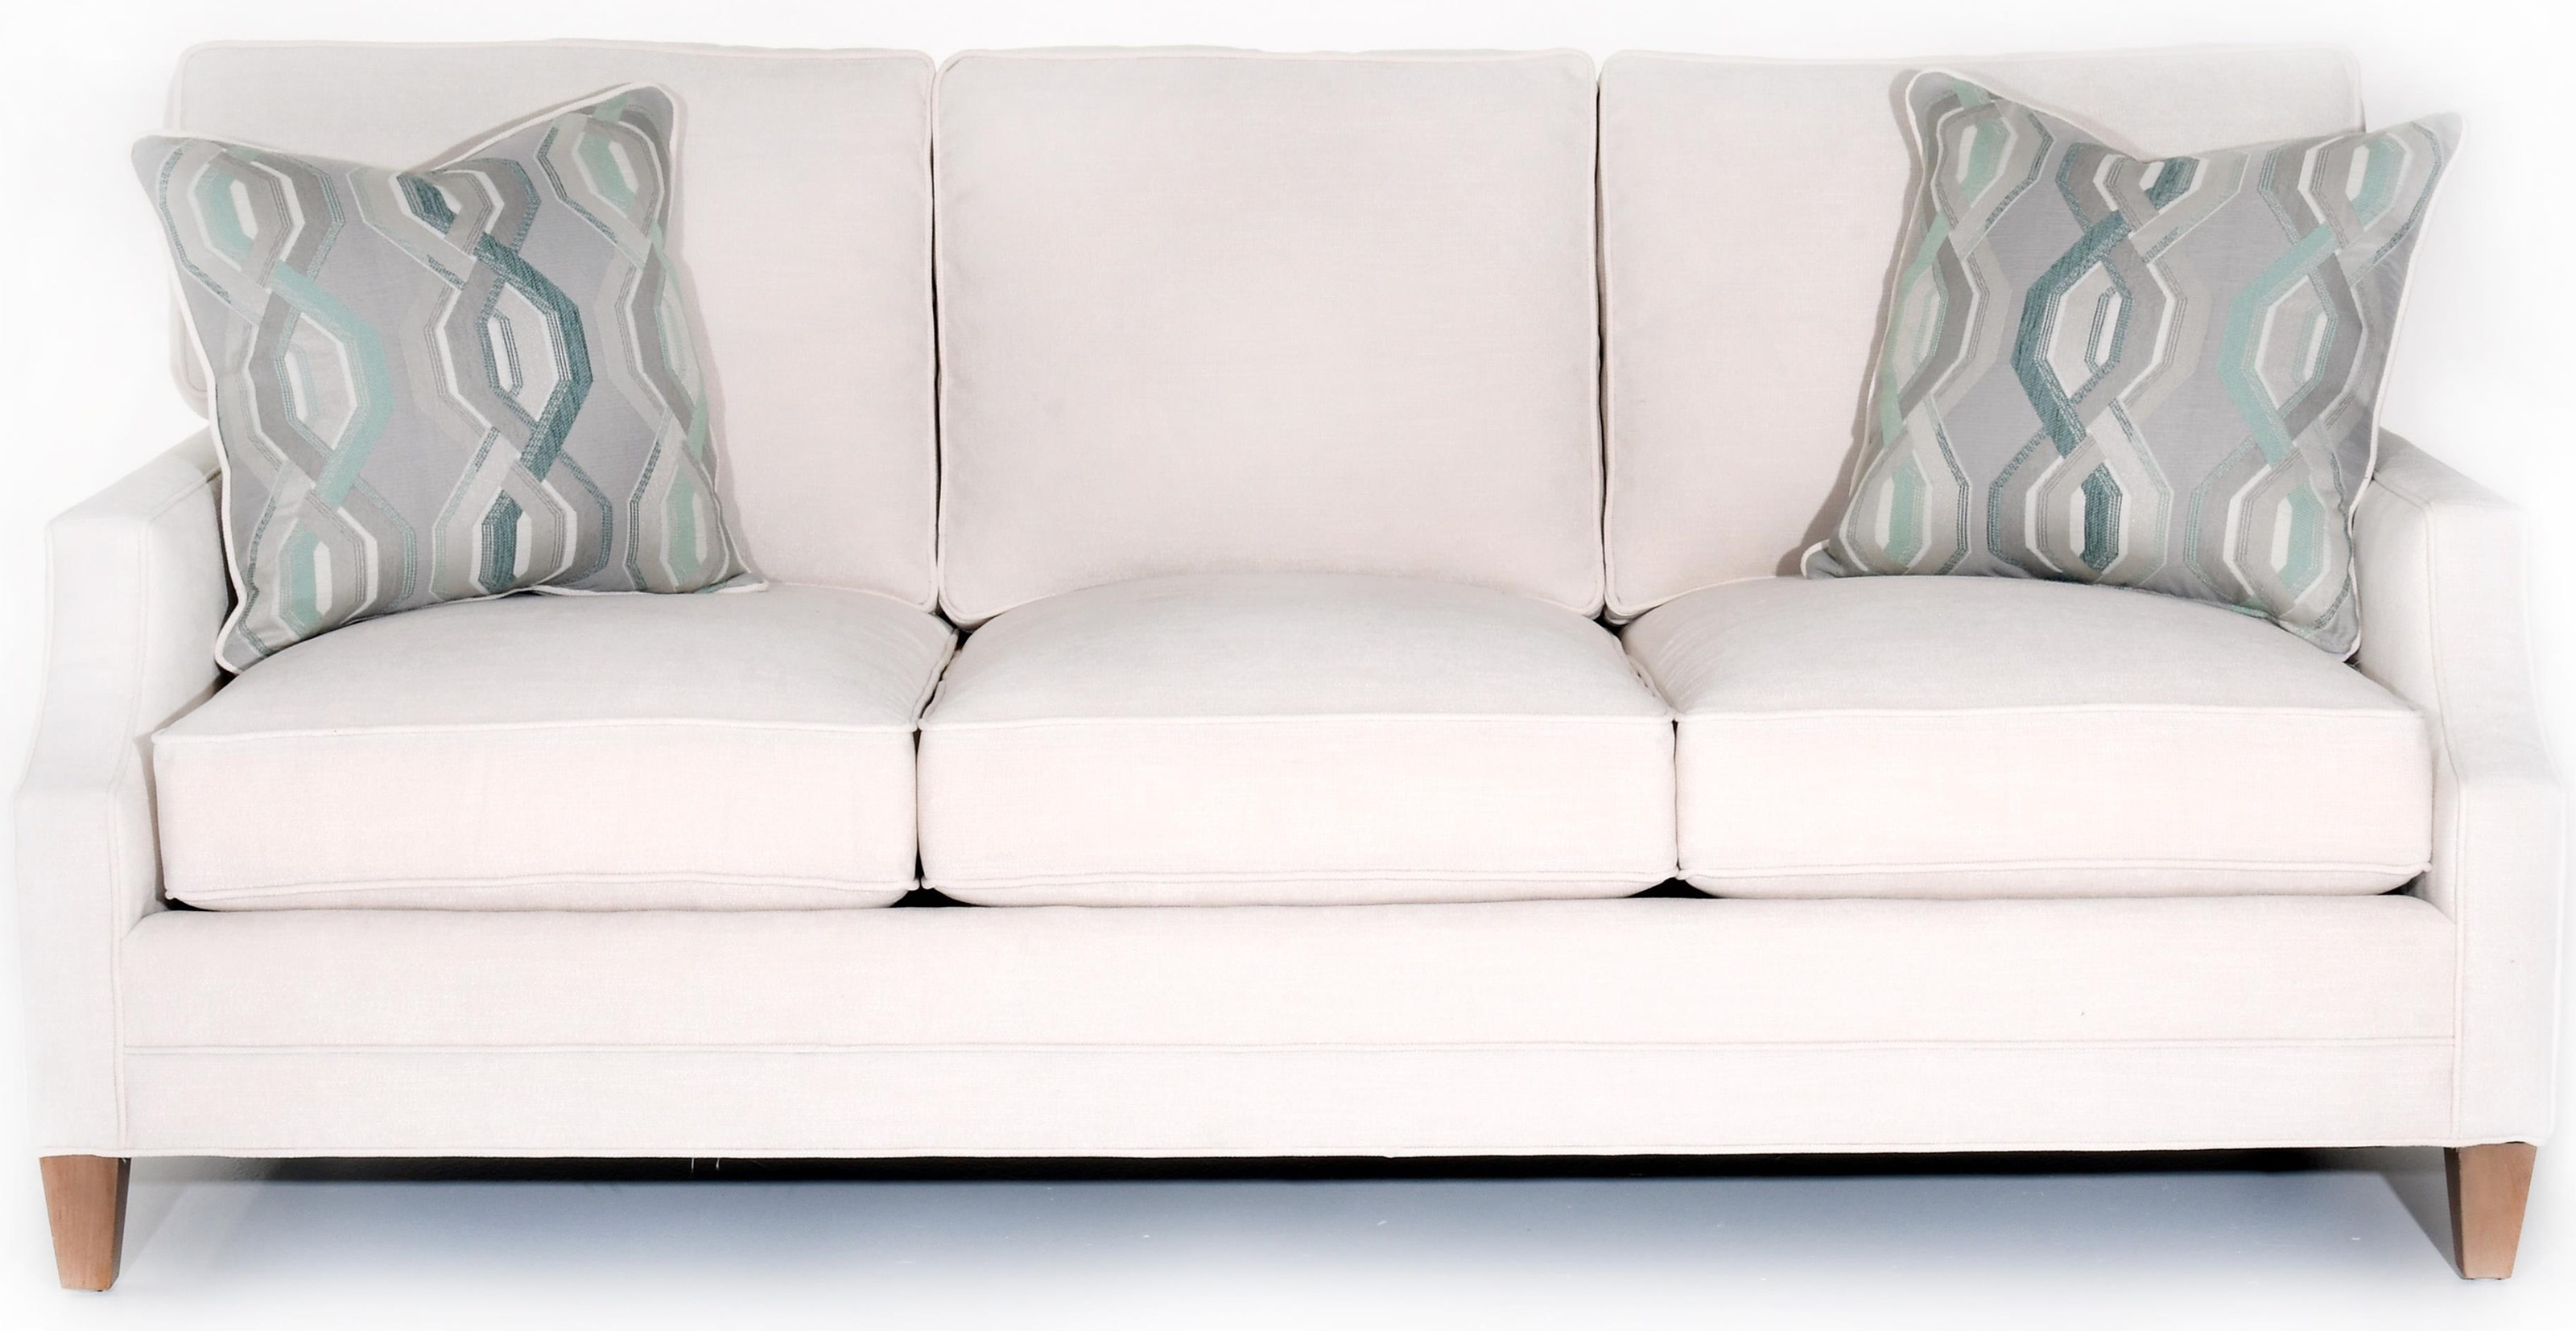 custom sectional sofa design chaise bed prices customizable 13 arkle org thesofa